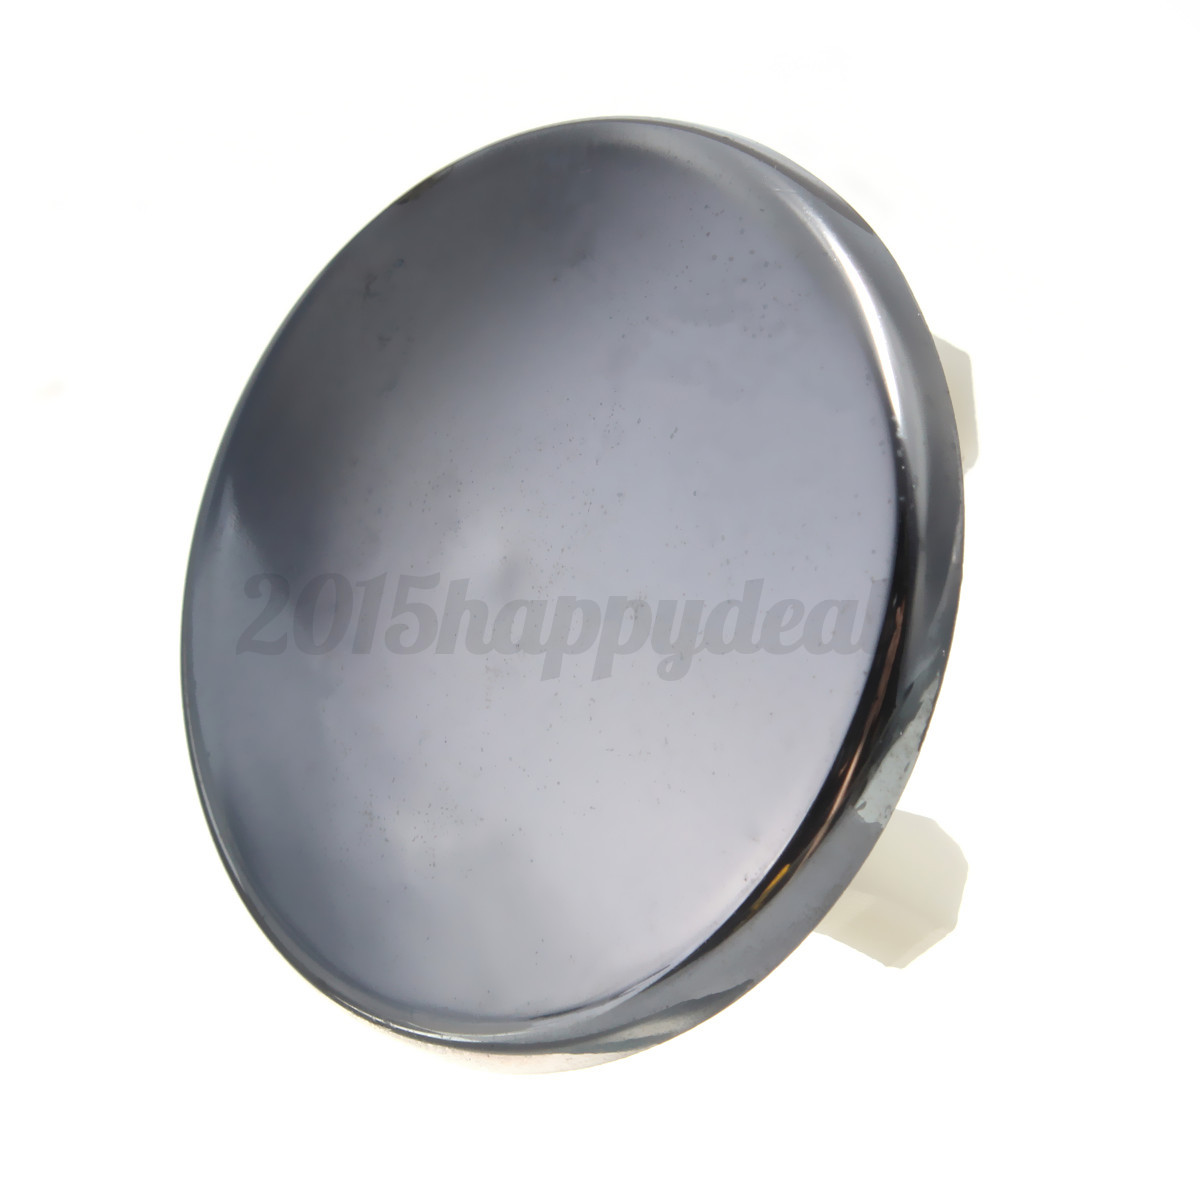 Plastic Sink Basin : Details about 4 Styles Plastic Bathroom Basin Sink Overflow Cover Fit ...